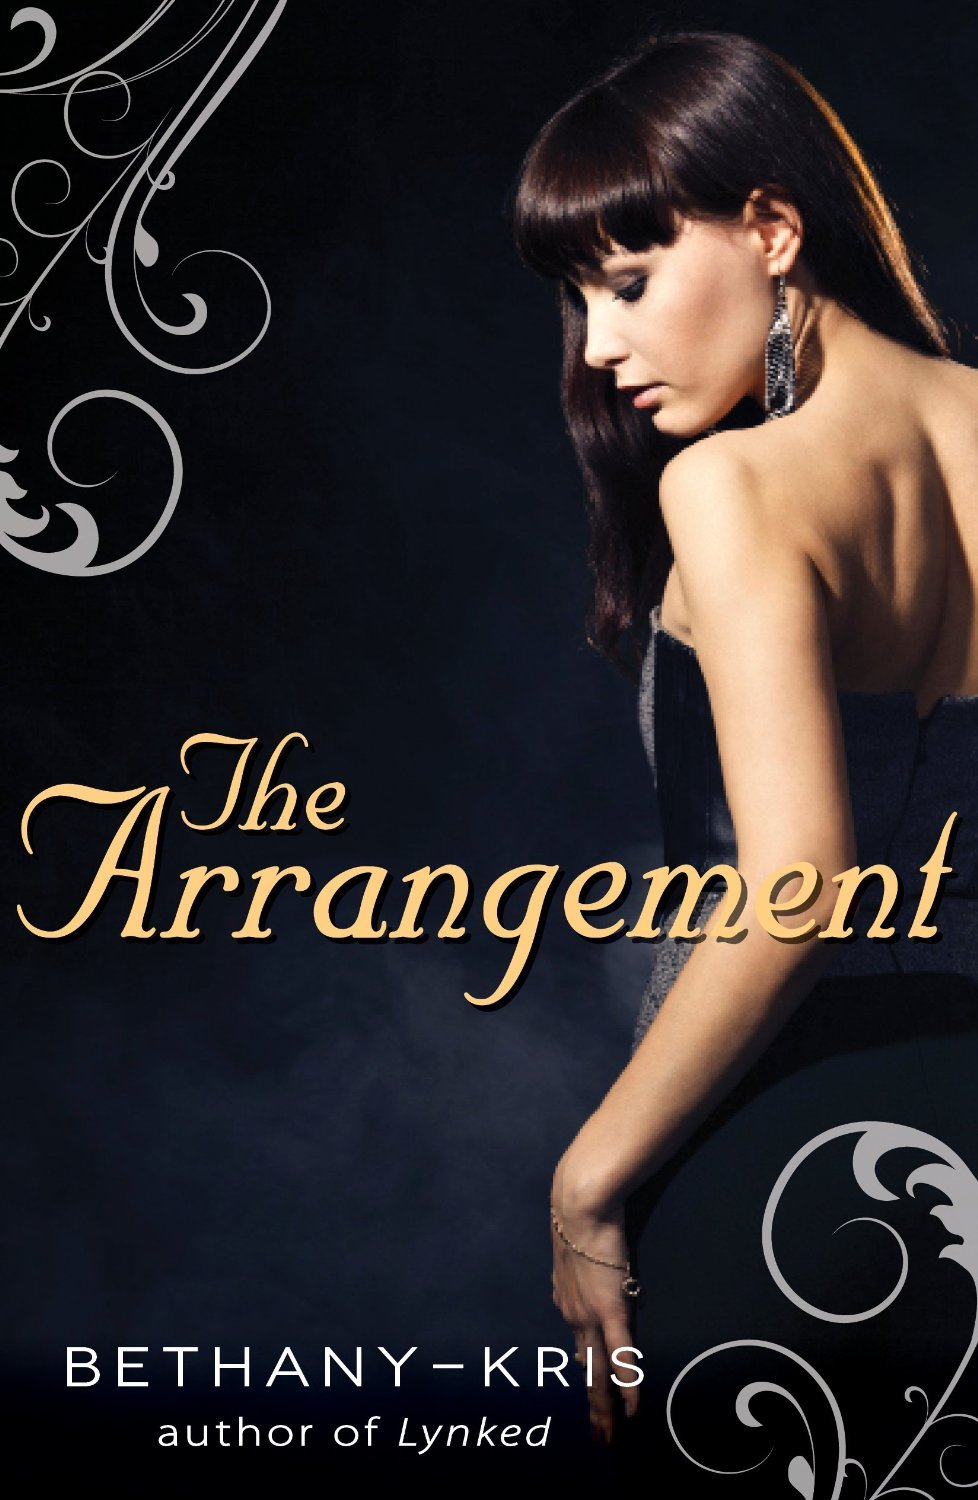 Bethany-Kris - The Russian Guns 1 - The Arrangement